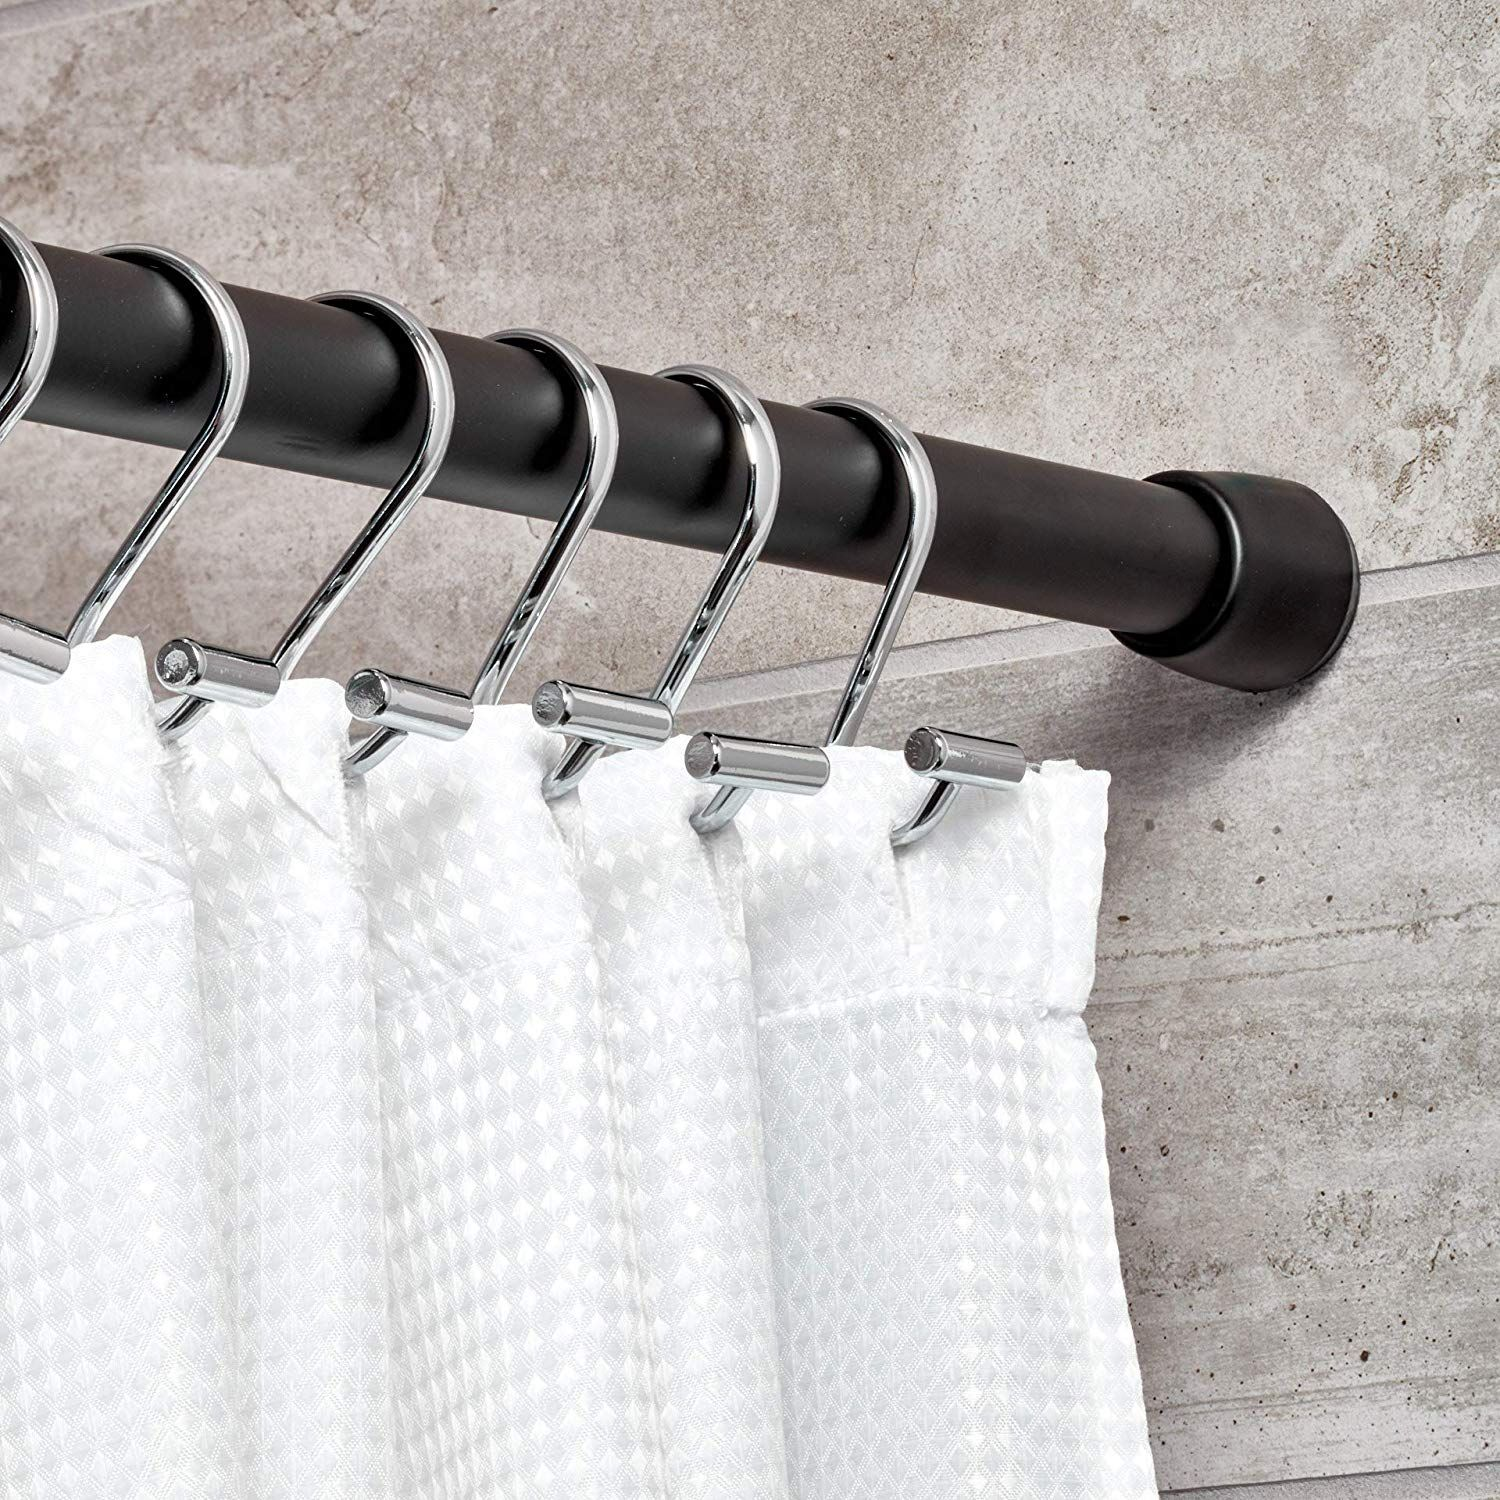 Pin By Brenda Wilson On Shower Curtain Rod Ideas Cool Shower Curtains Shower Curtain Bathroom Shower Curtains